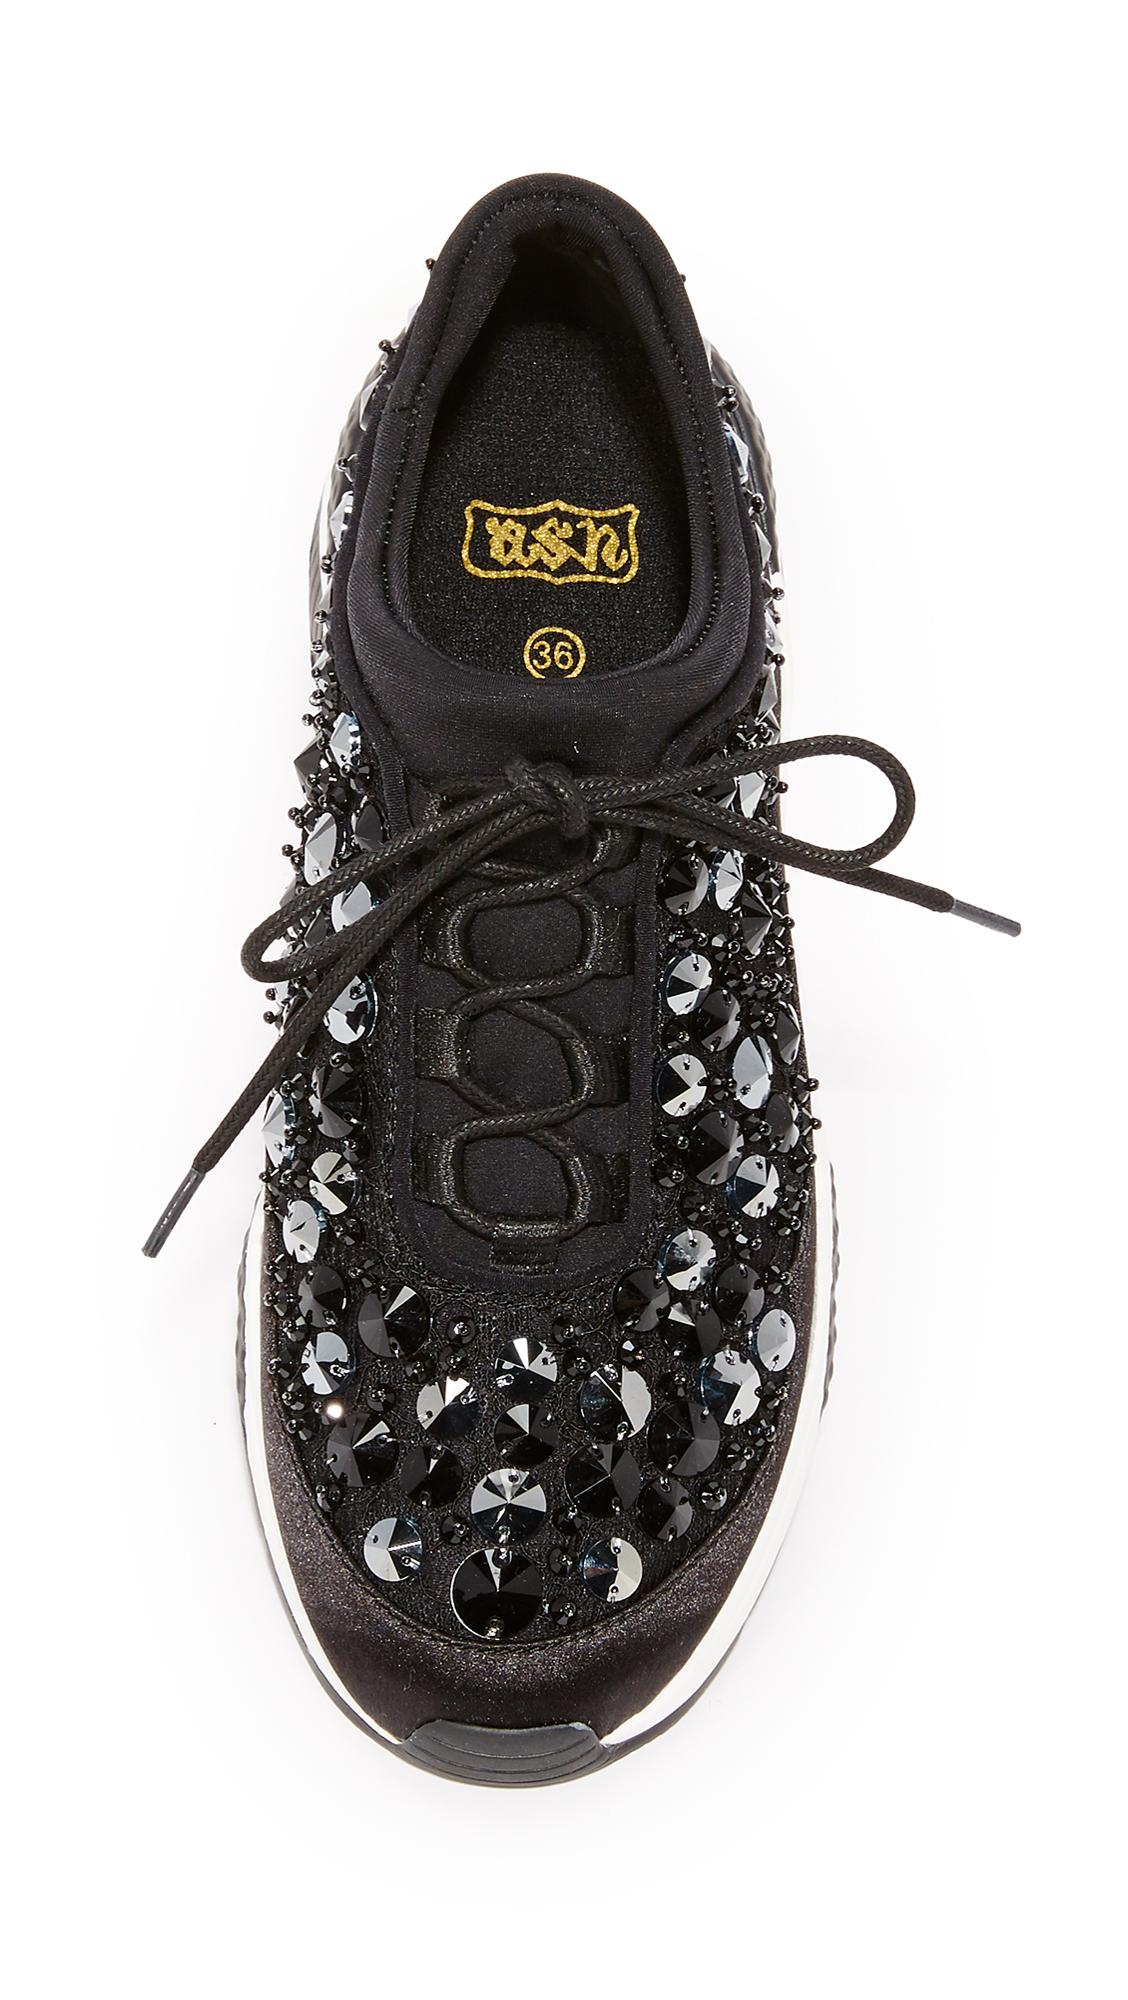 Ash Lace Muse Beads Sneakers in Black